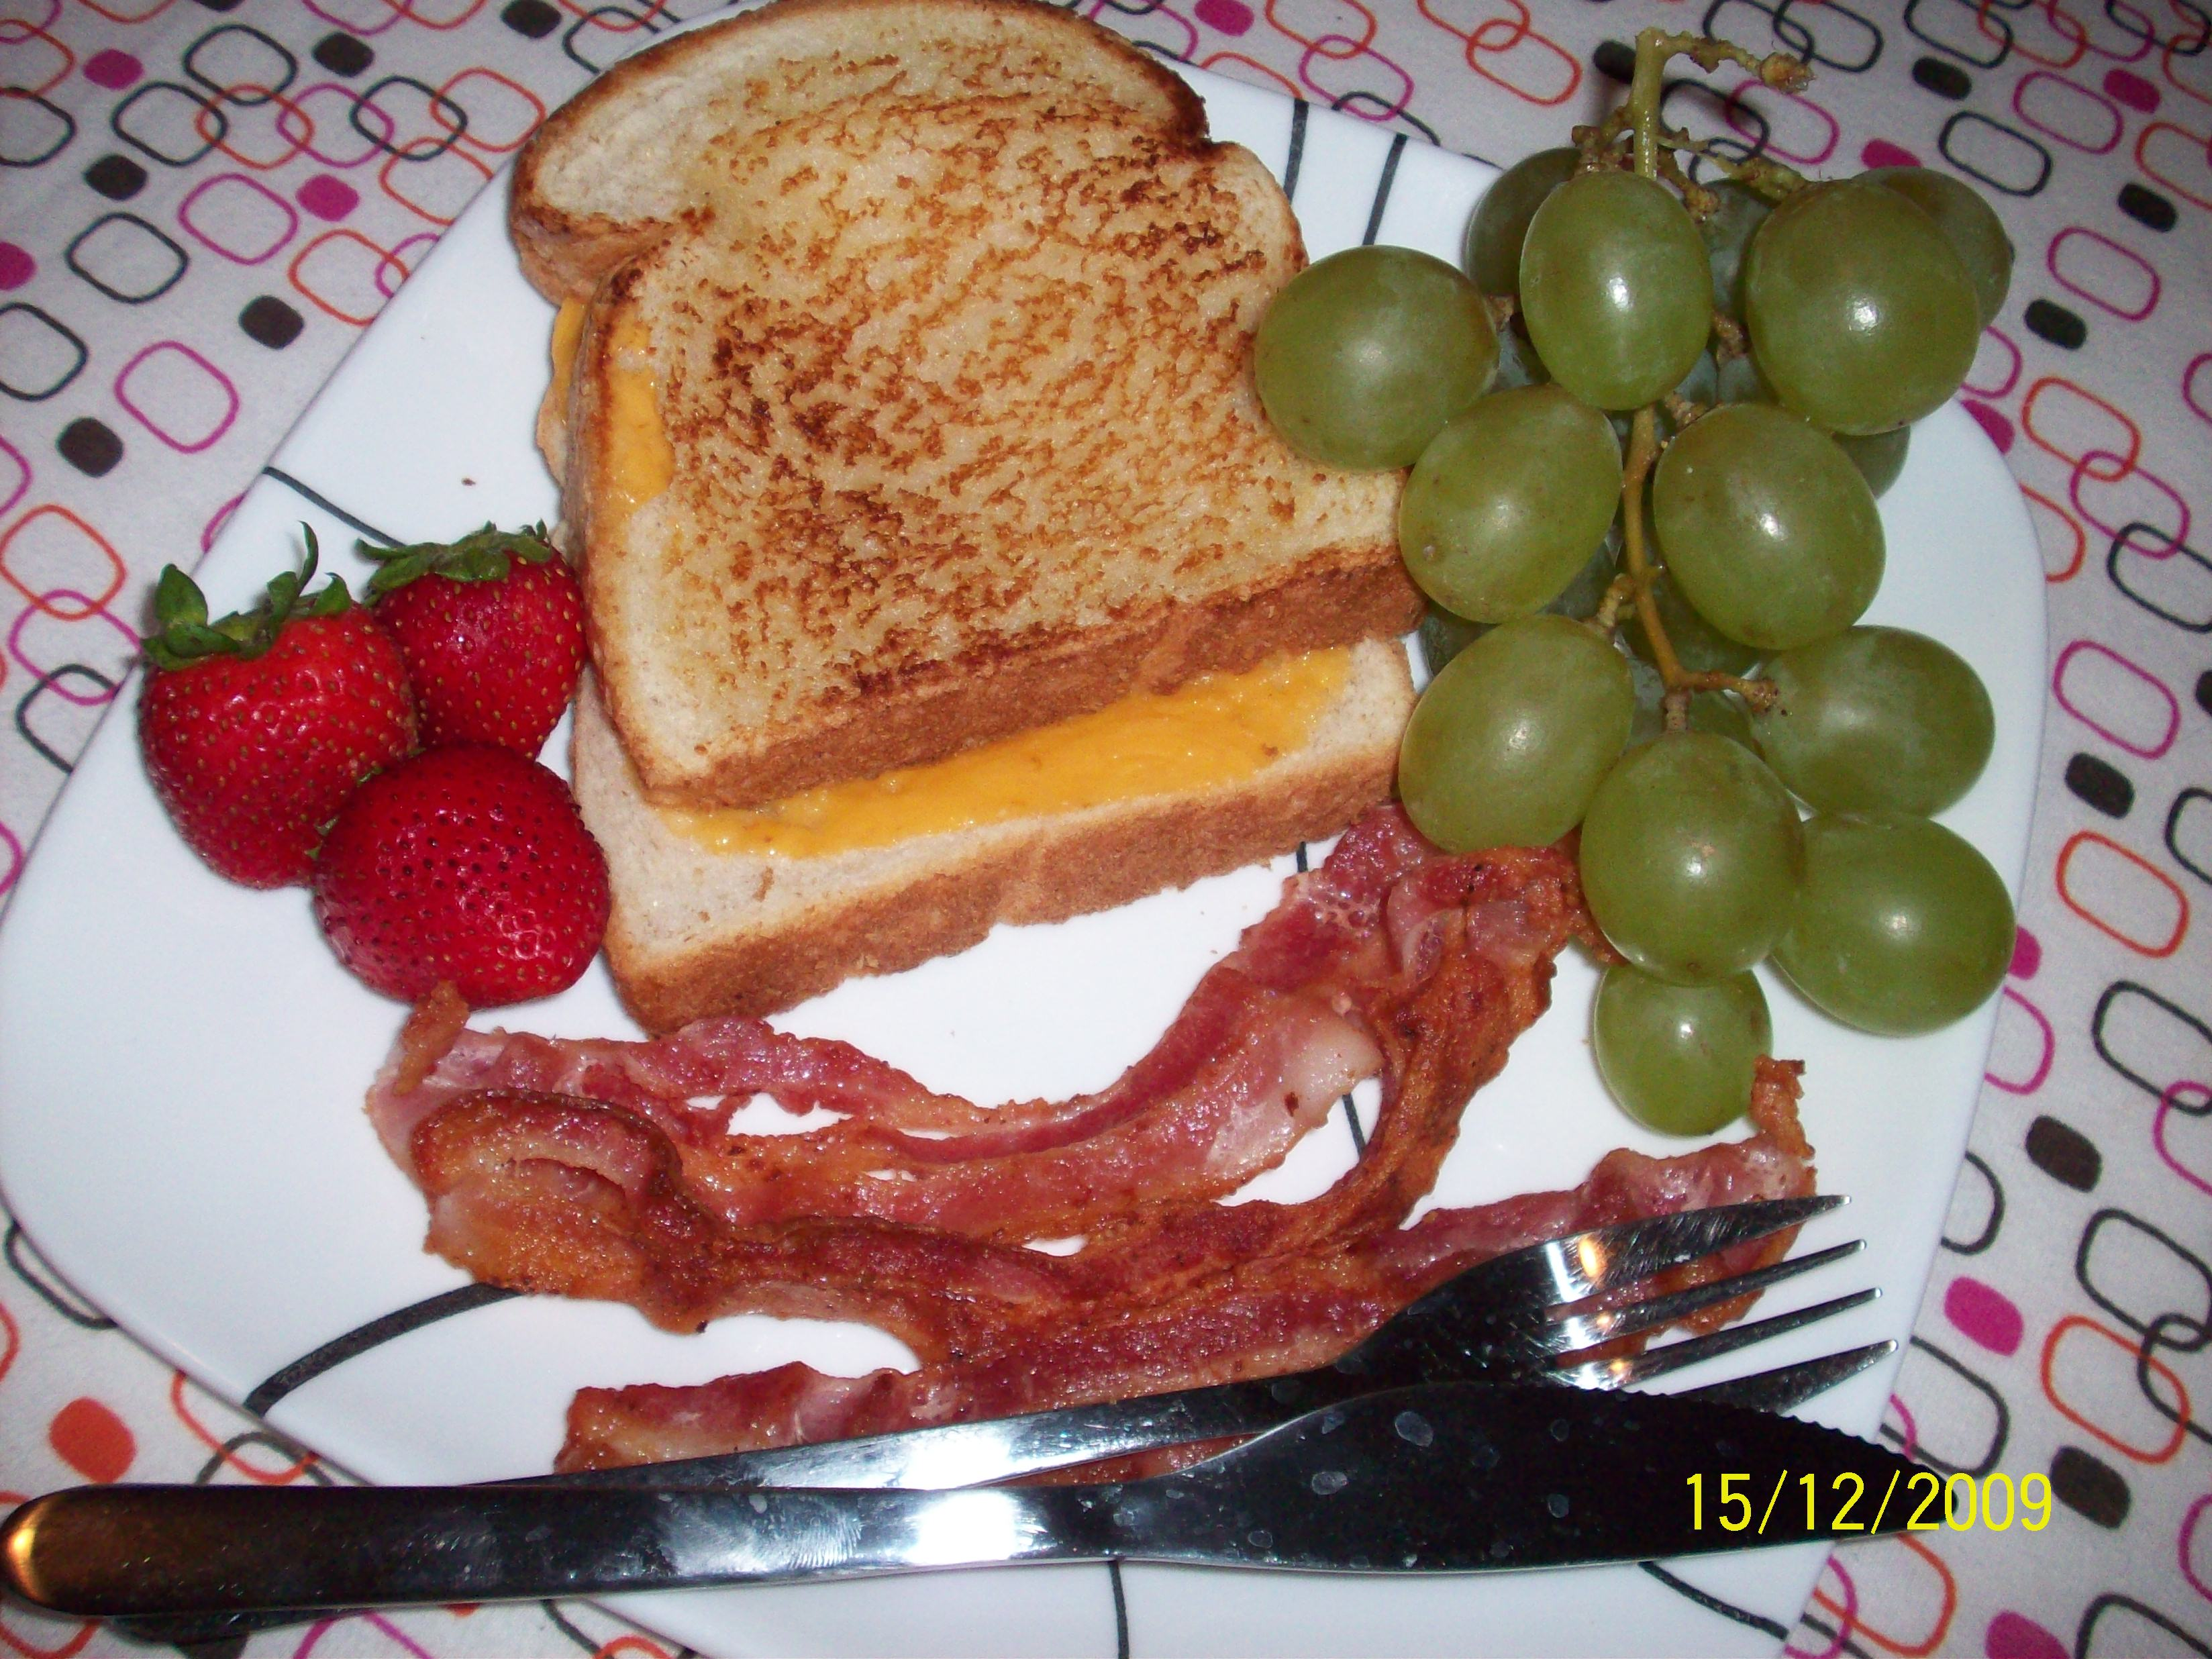 https://foodloader.net/cutie_2009-12-15_Toast__Bacon__Strawberries_and_Grapes.jpg